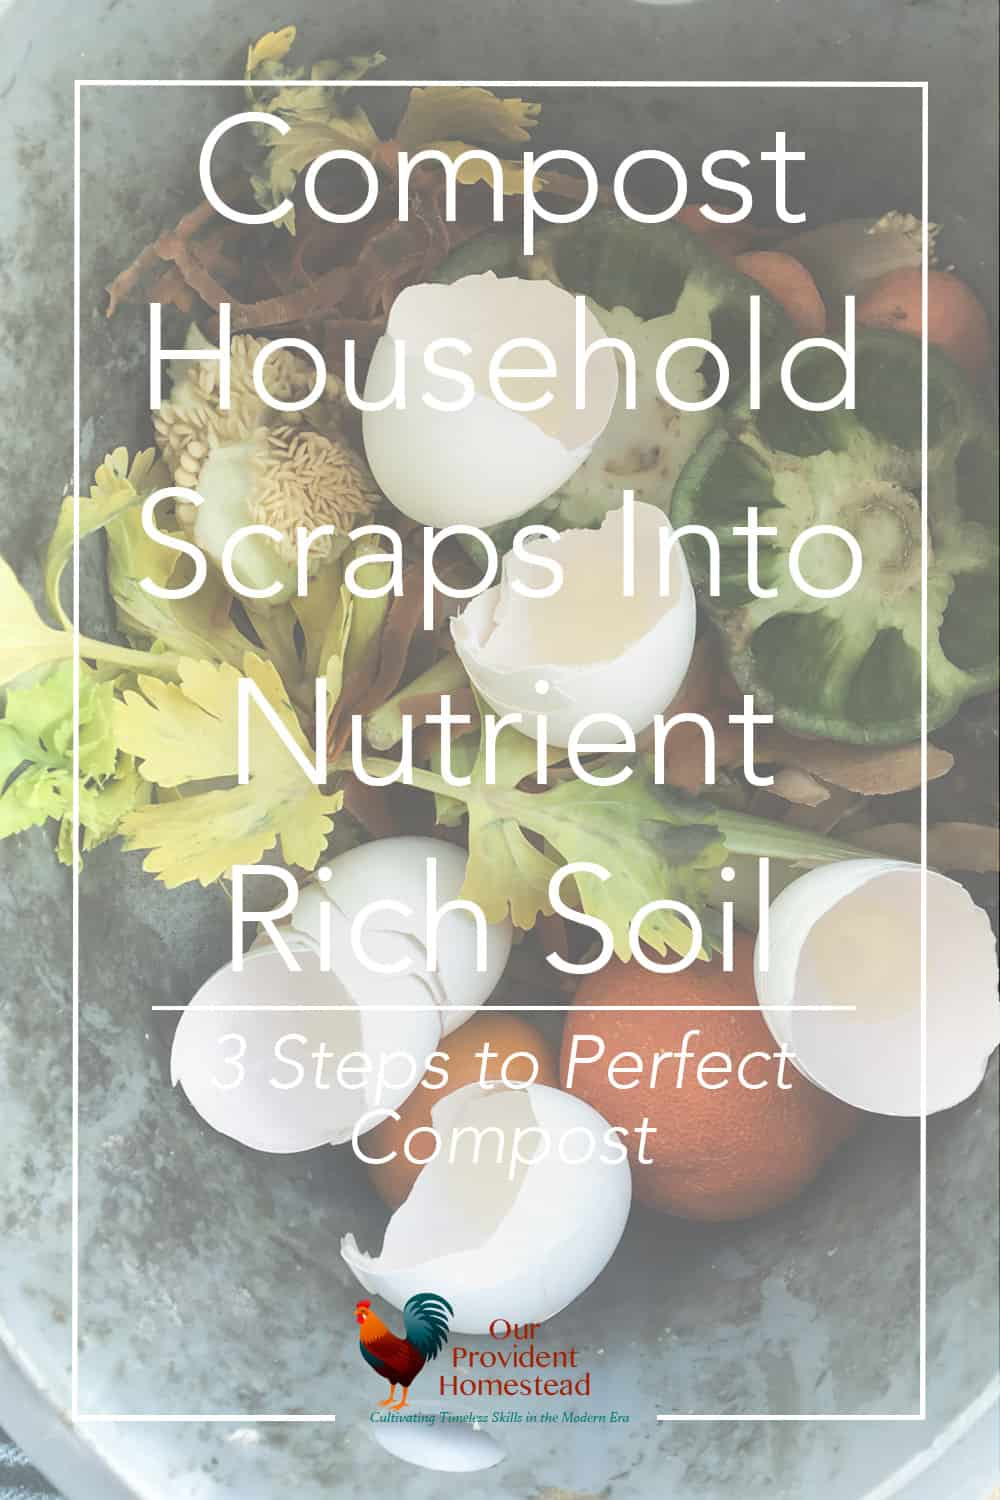 What do you use to help the soil in your garden perform better? Compost household scraps into nutrient rich soil in 3 easy steps. Composting | Garden Soil | Nutrient Rich Soil